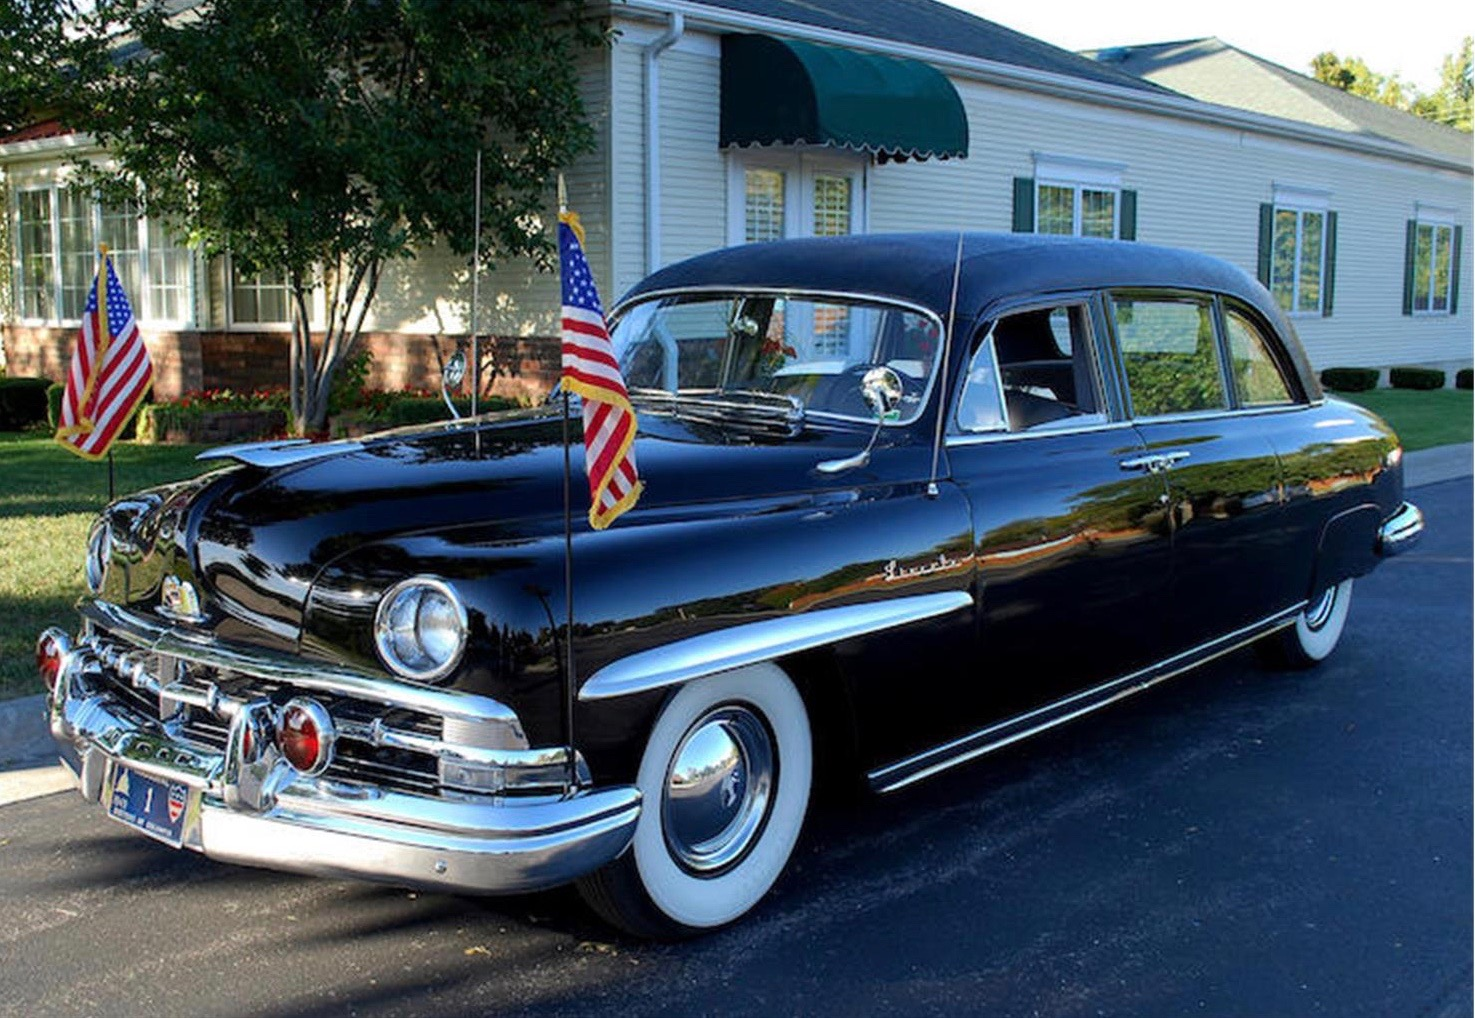 Harry Truman's 1950 Lincoln limo for sale